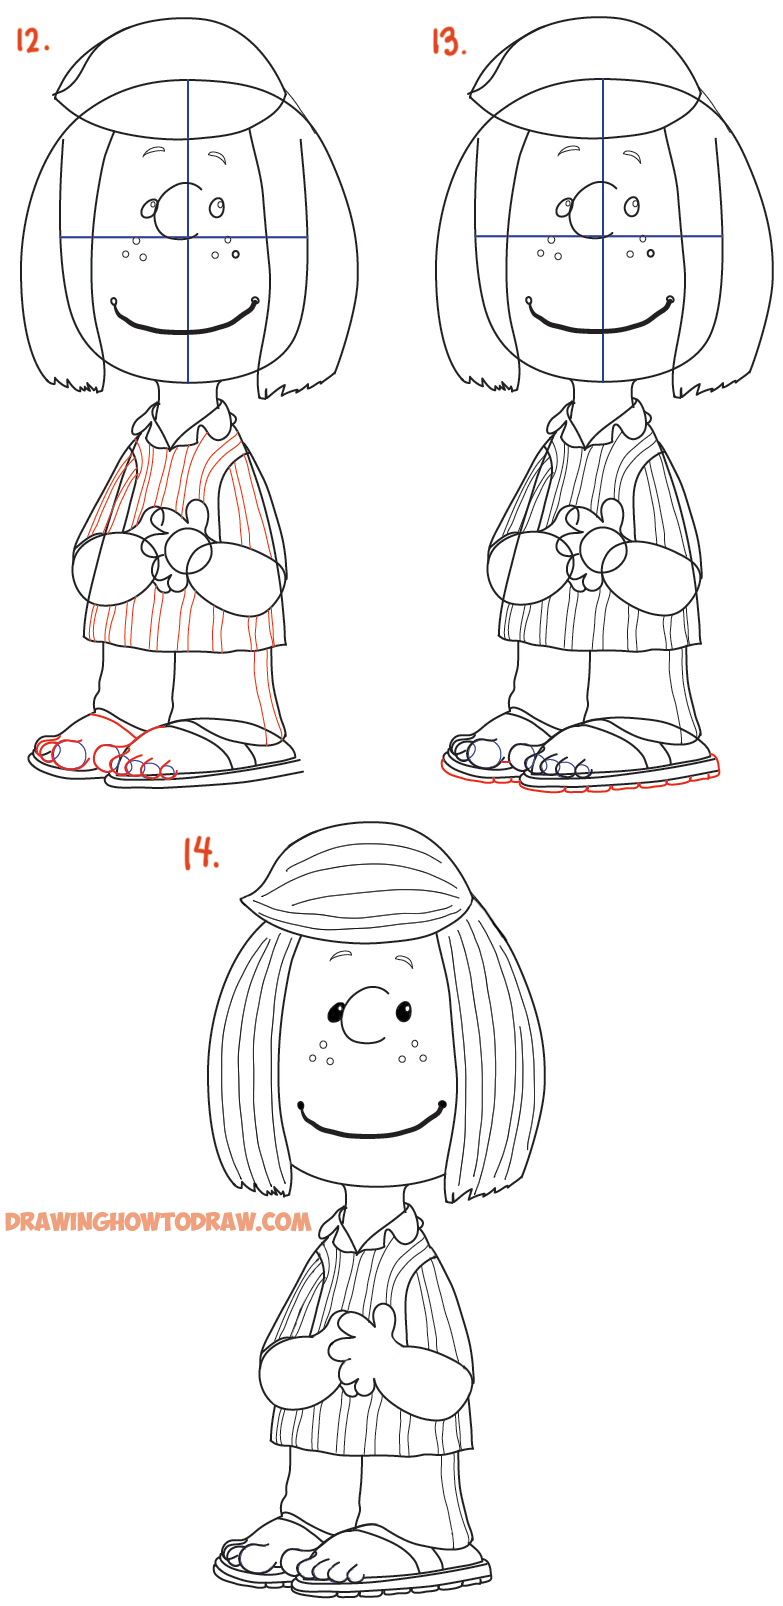 Learn how to draw Peppermint Patty from the new Peanuts Charlie Brown Movie